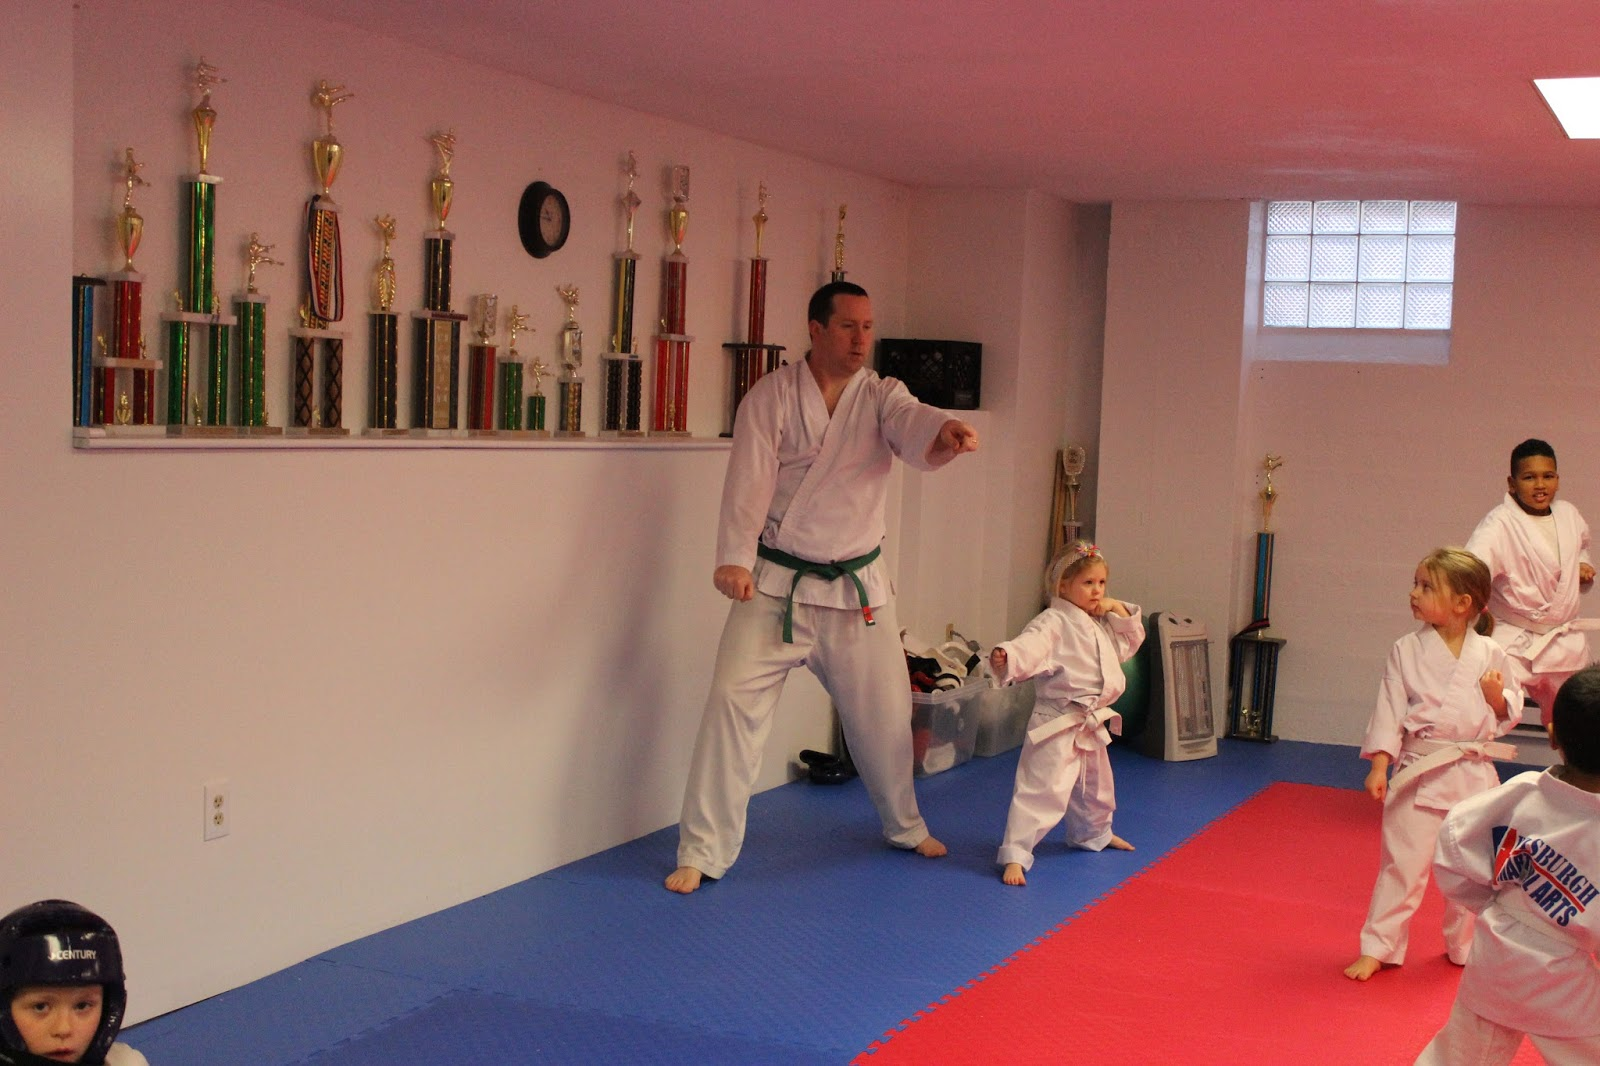 my karate test experience Karate test - i stared down at my hands,  - karate versus tae kwon do through my advanced training in the  it can be a humiliating or terrifying experience,.